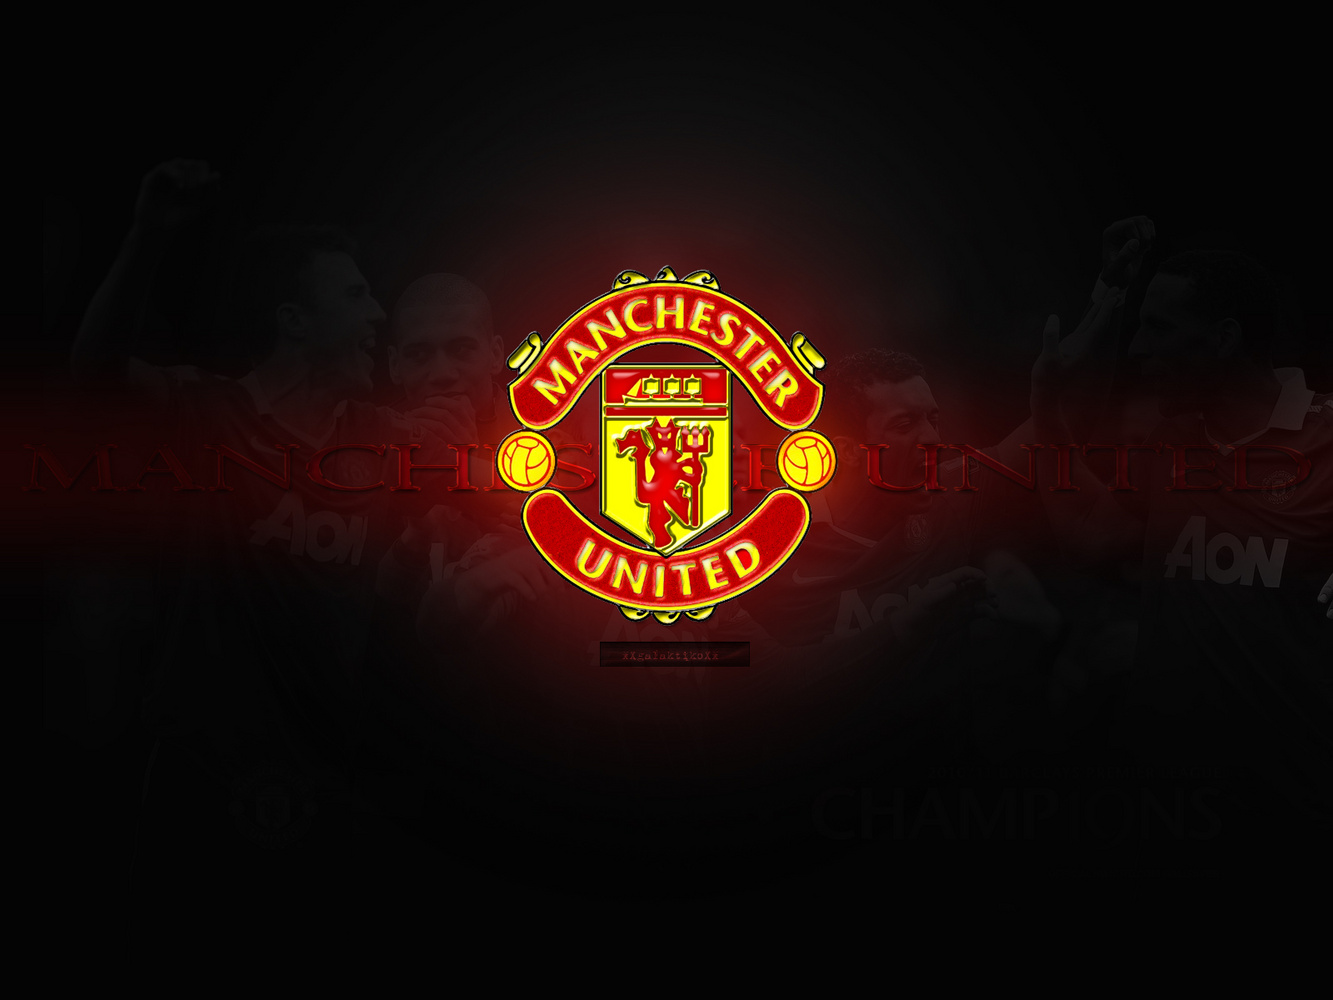 World Sports Hd Wallpapers Manchester United Hd Wallpapers 2012 1333x1000